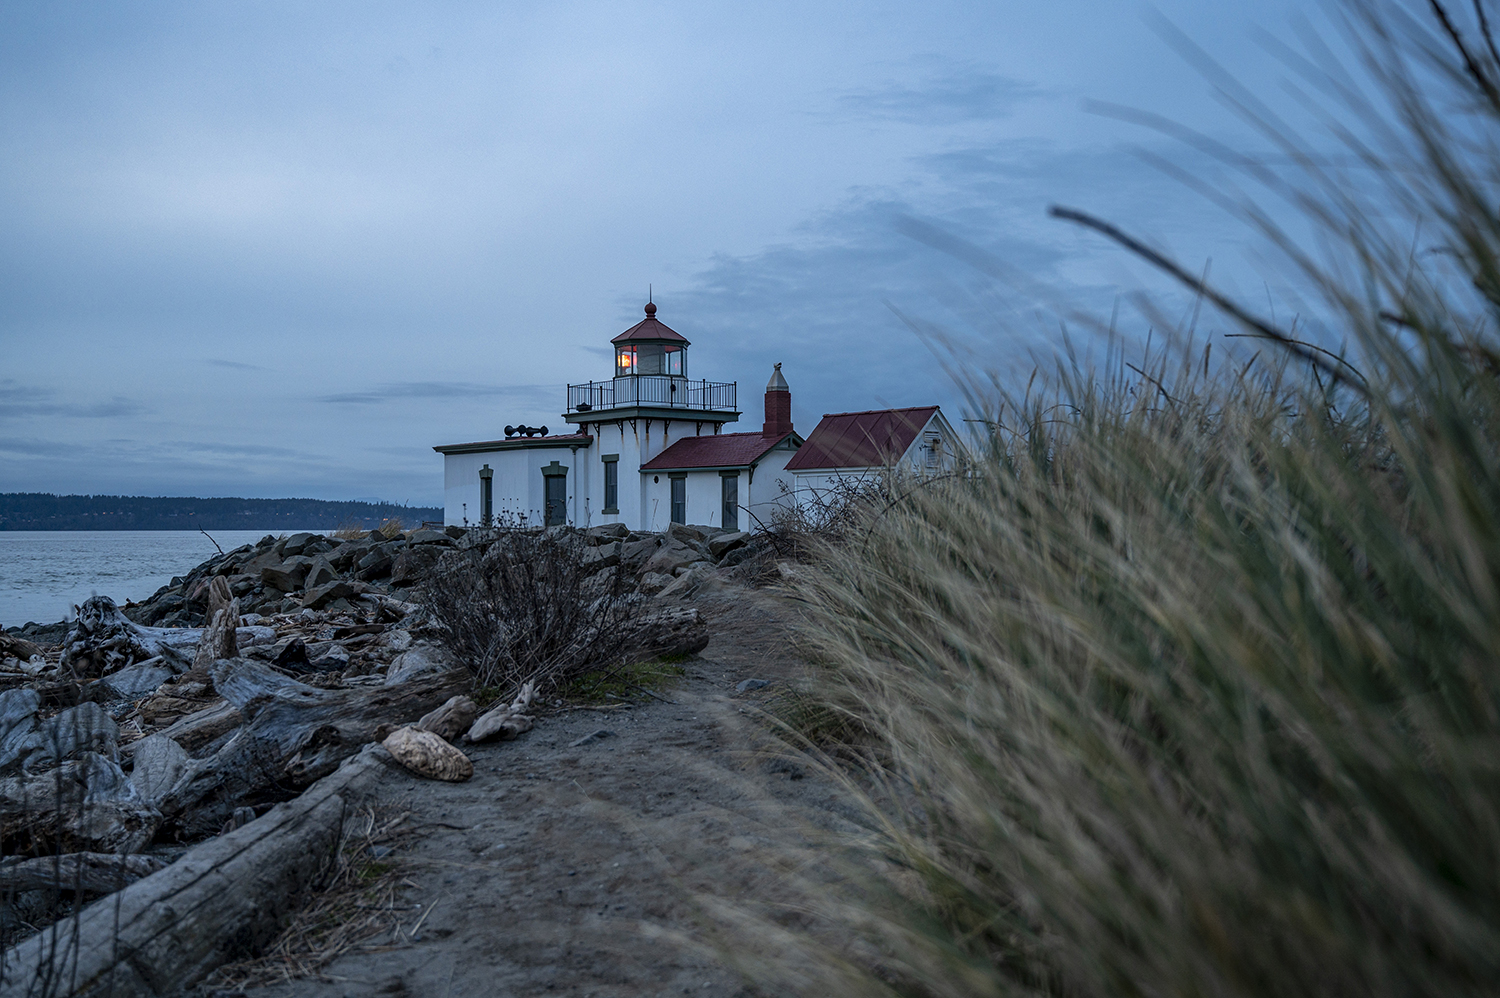 Nestled on a sandy point extending out into the Puget Sound, the West Point Light, commonly known as the Discovery Park Lighthouse, provides active navigation to Seattle's maritime traffic at West Point. (Image: Rachael Jones / Seattle Refined)